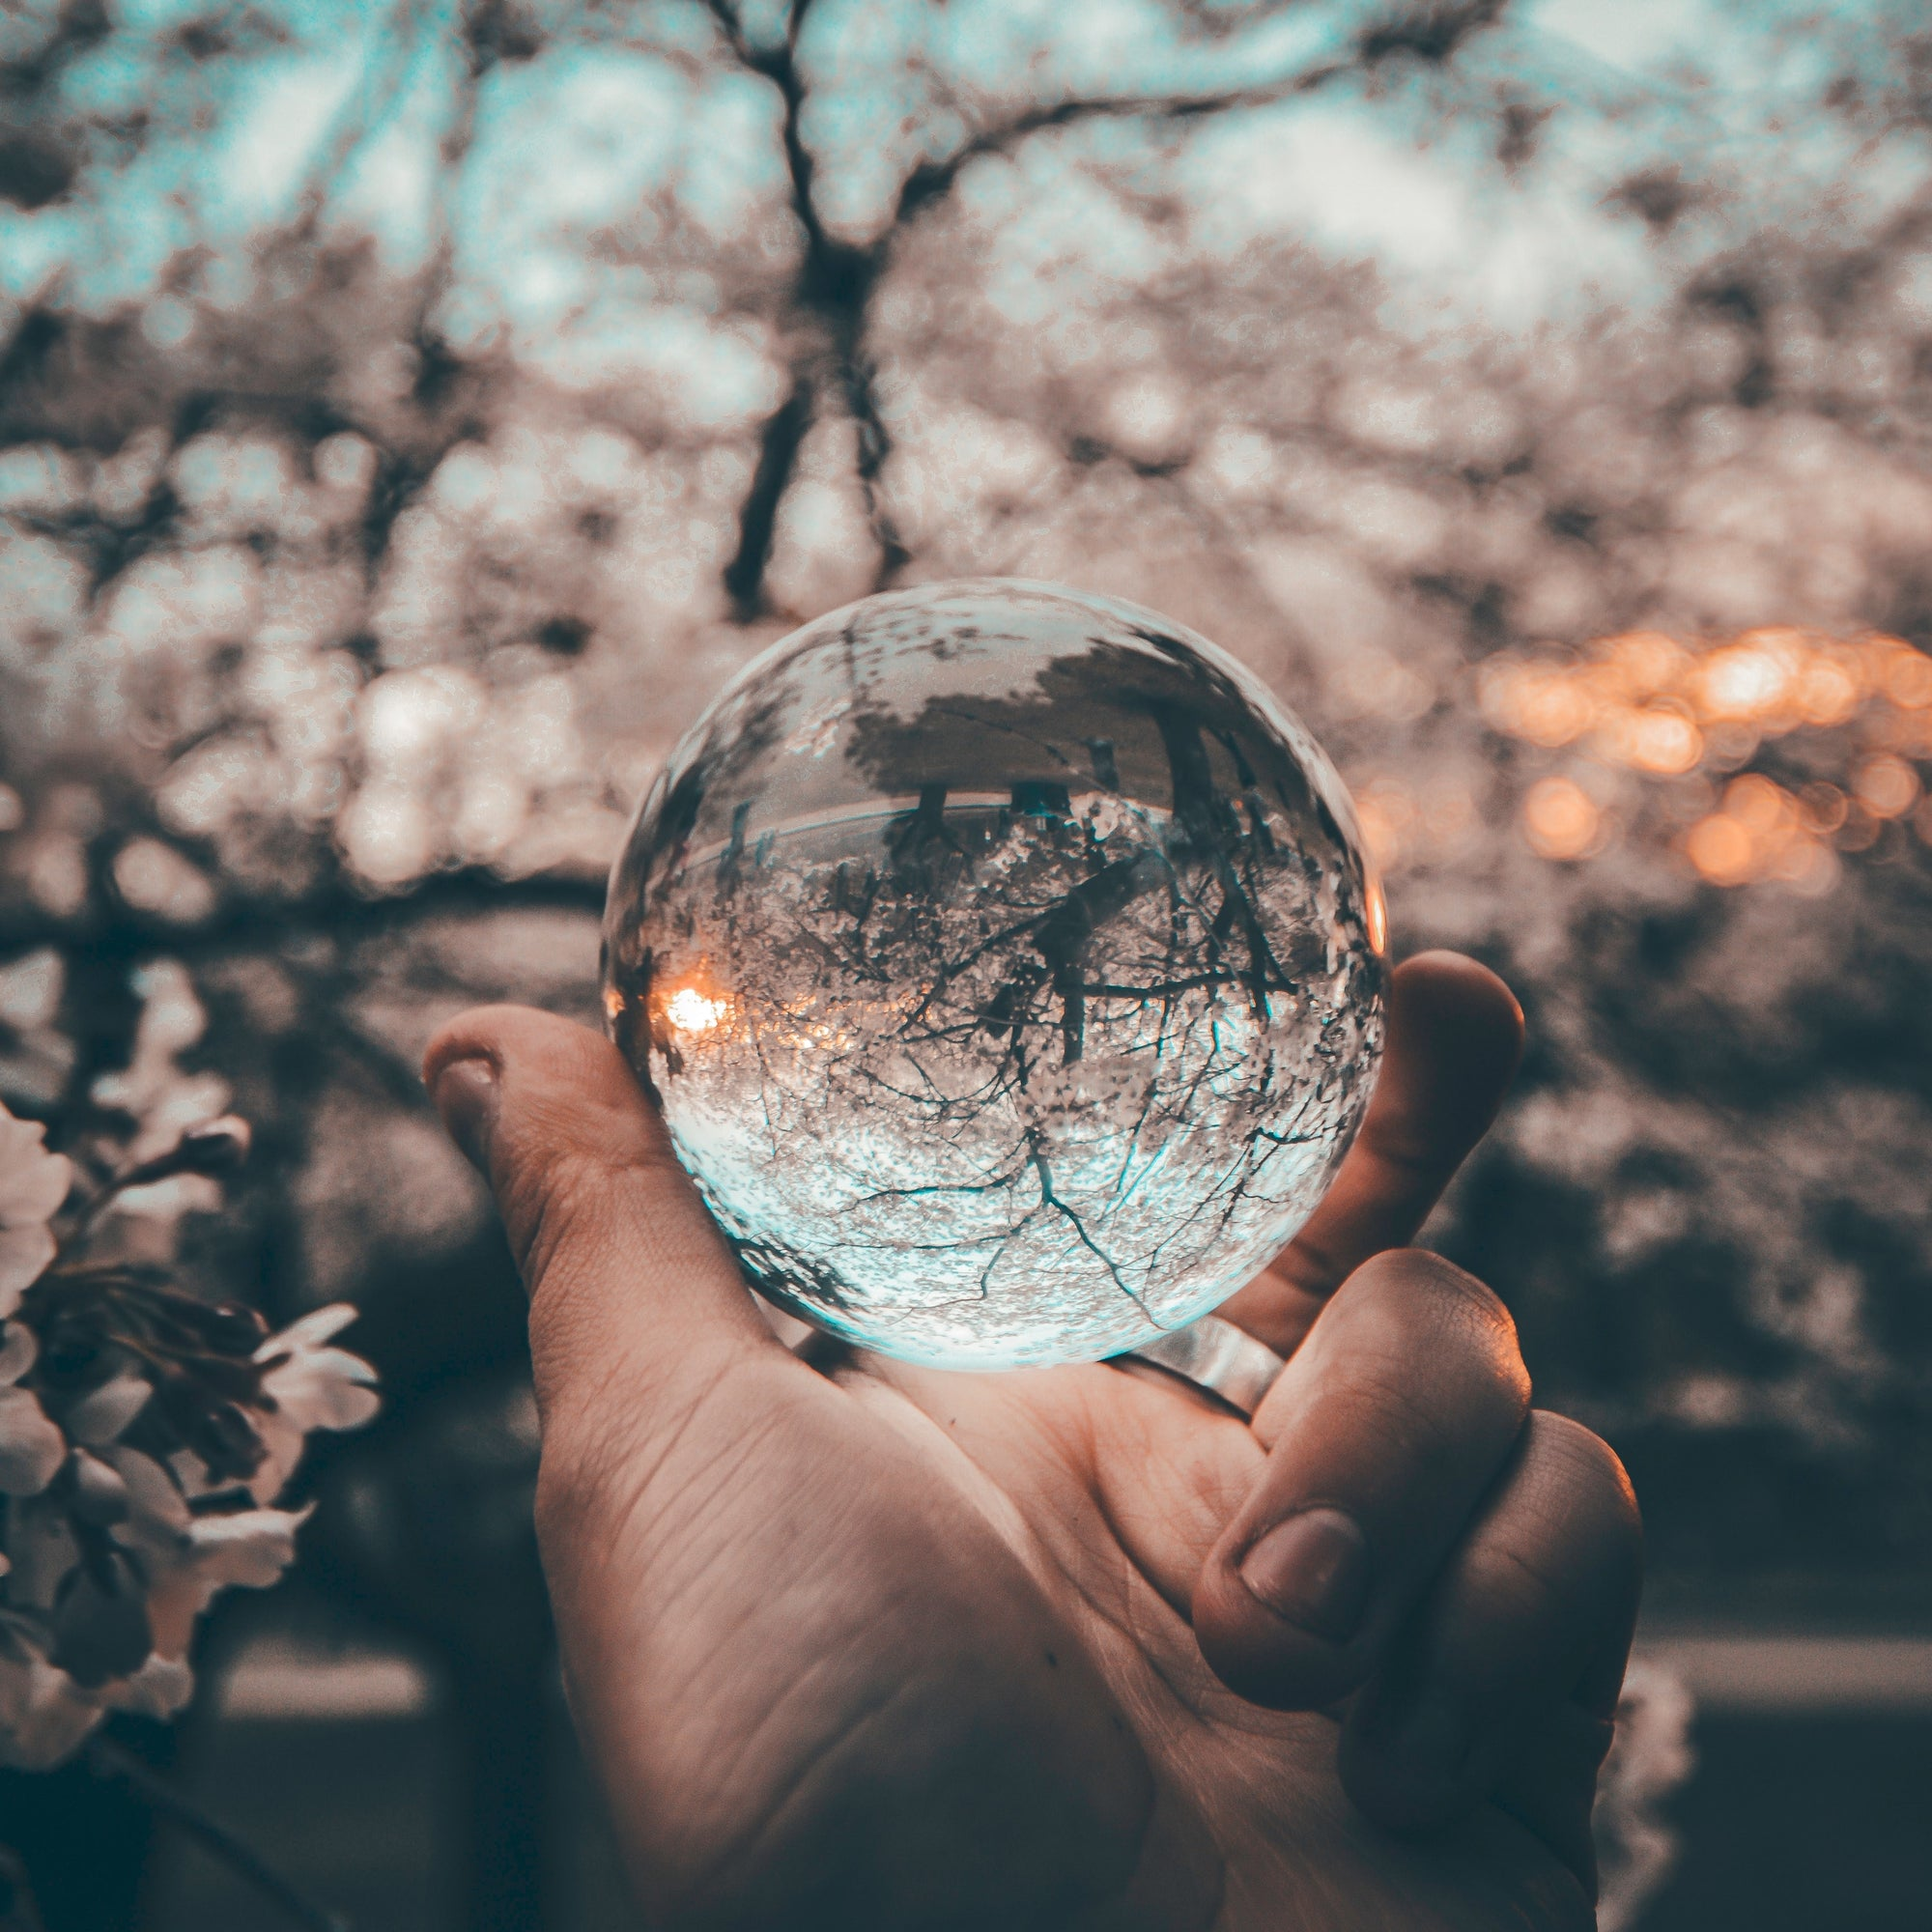 Crystal Ball | A great advantage of mass hysteria facilitates is the ability to pause and reflect. | Blake Bauer